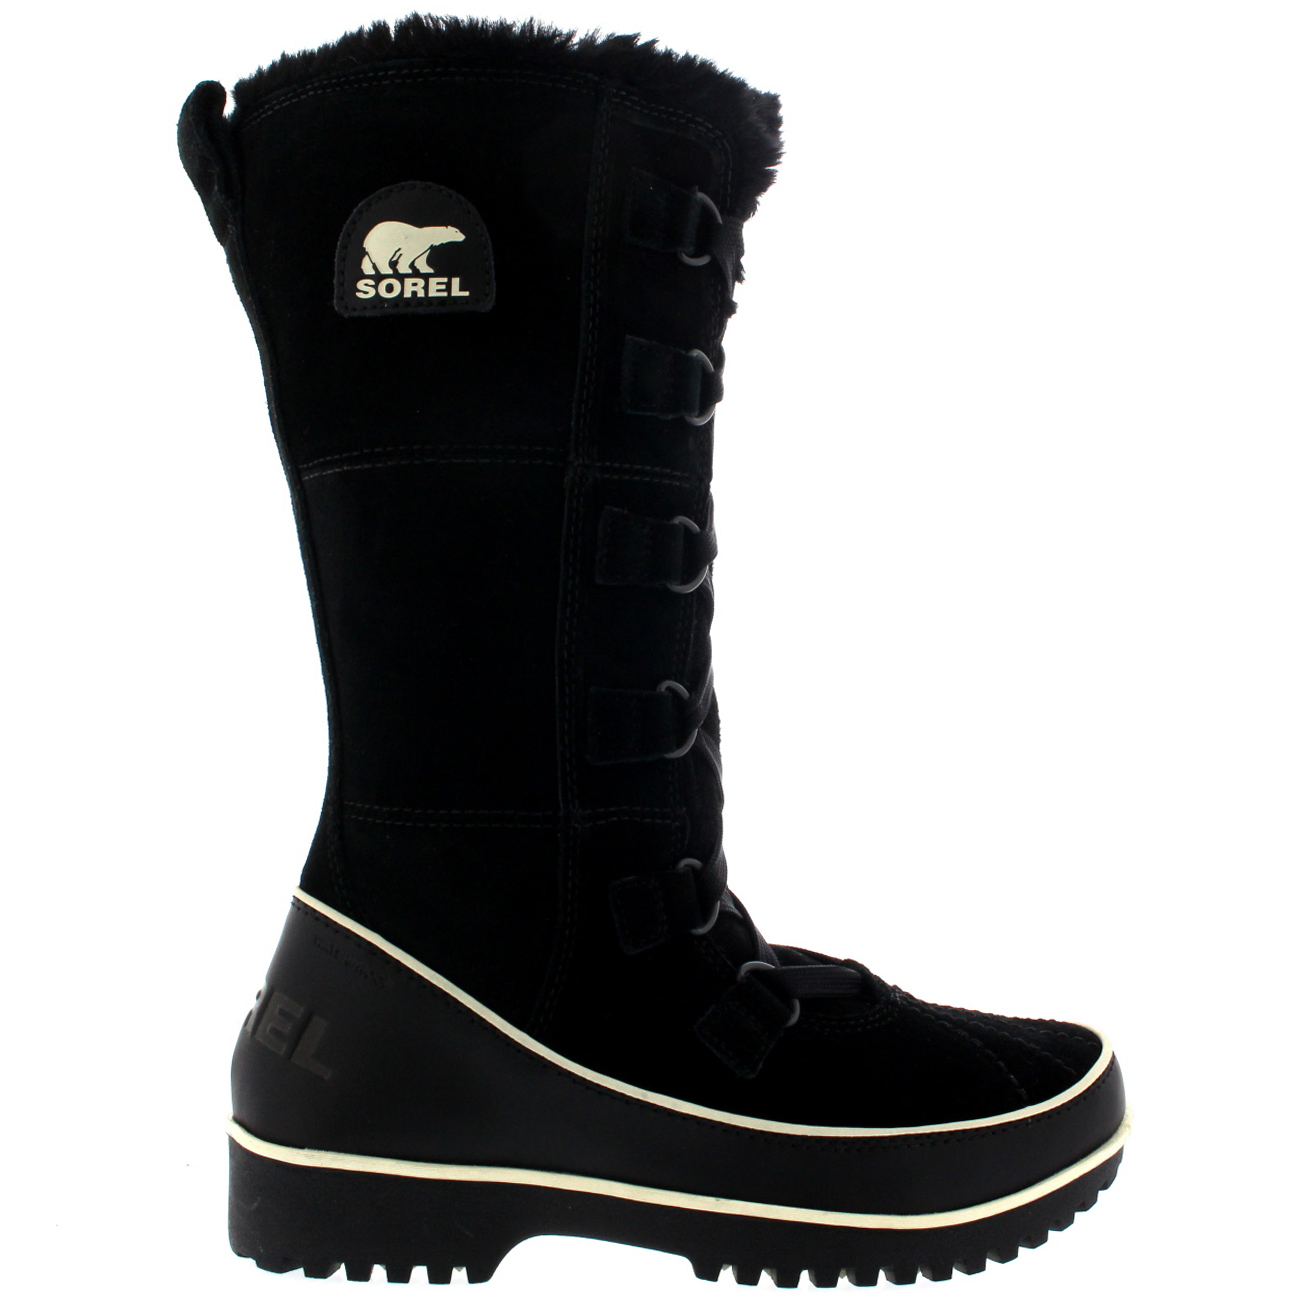 Popular Sorel Tivoli High Women39s Winter Boots UK 90 Black